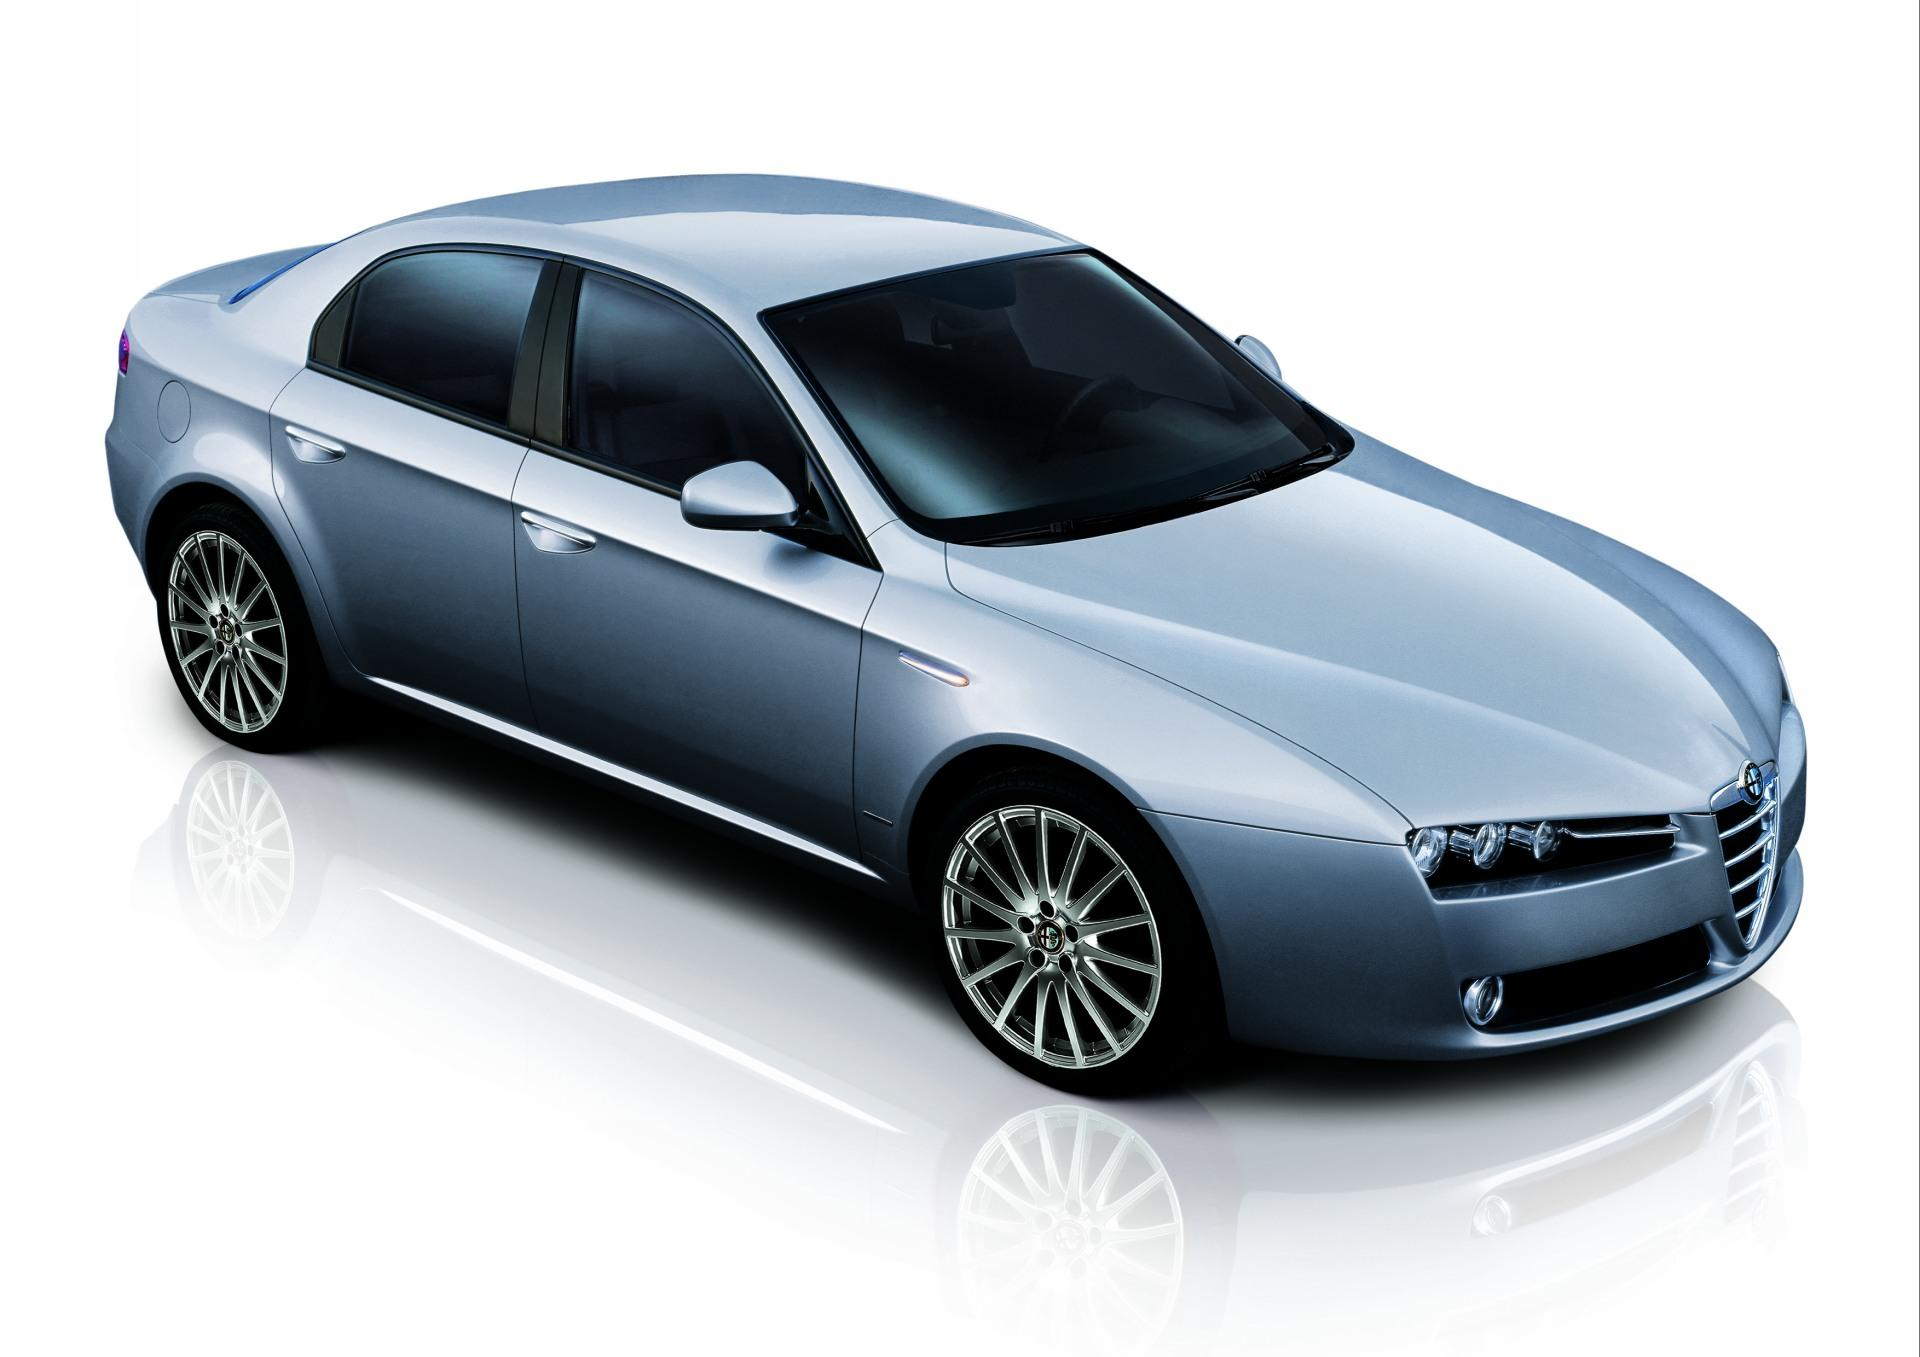 2009 alfa romeo 159 news and information. Black Bedroom Furniture Sets. Home Design Ideas